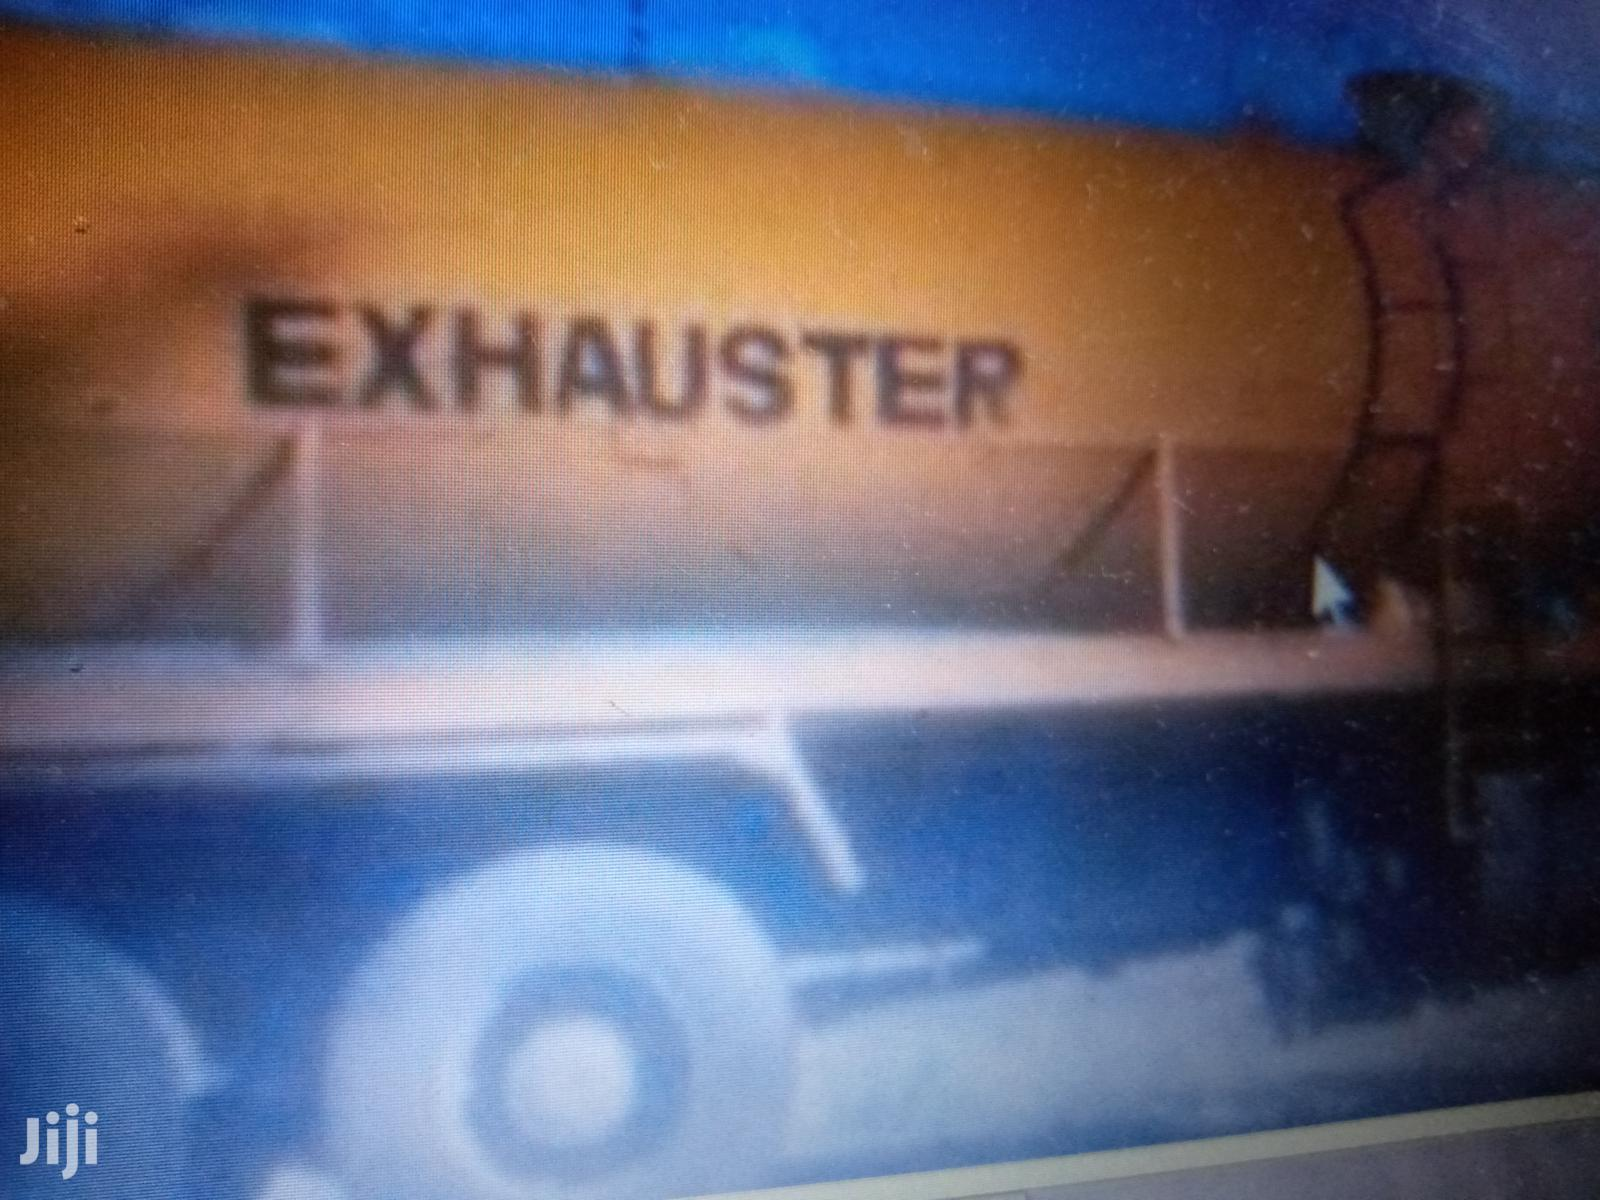 Sewage Removal And Exhauster Services